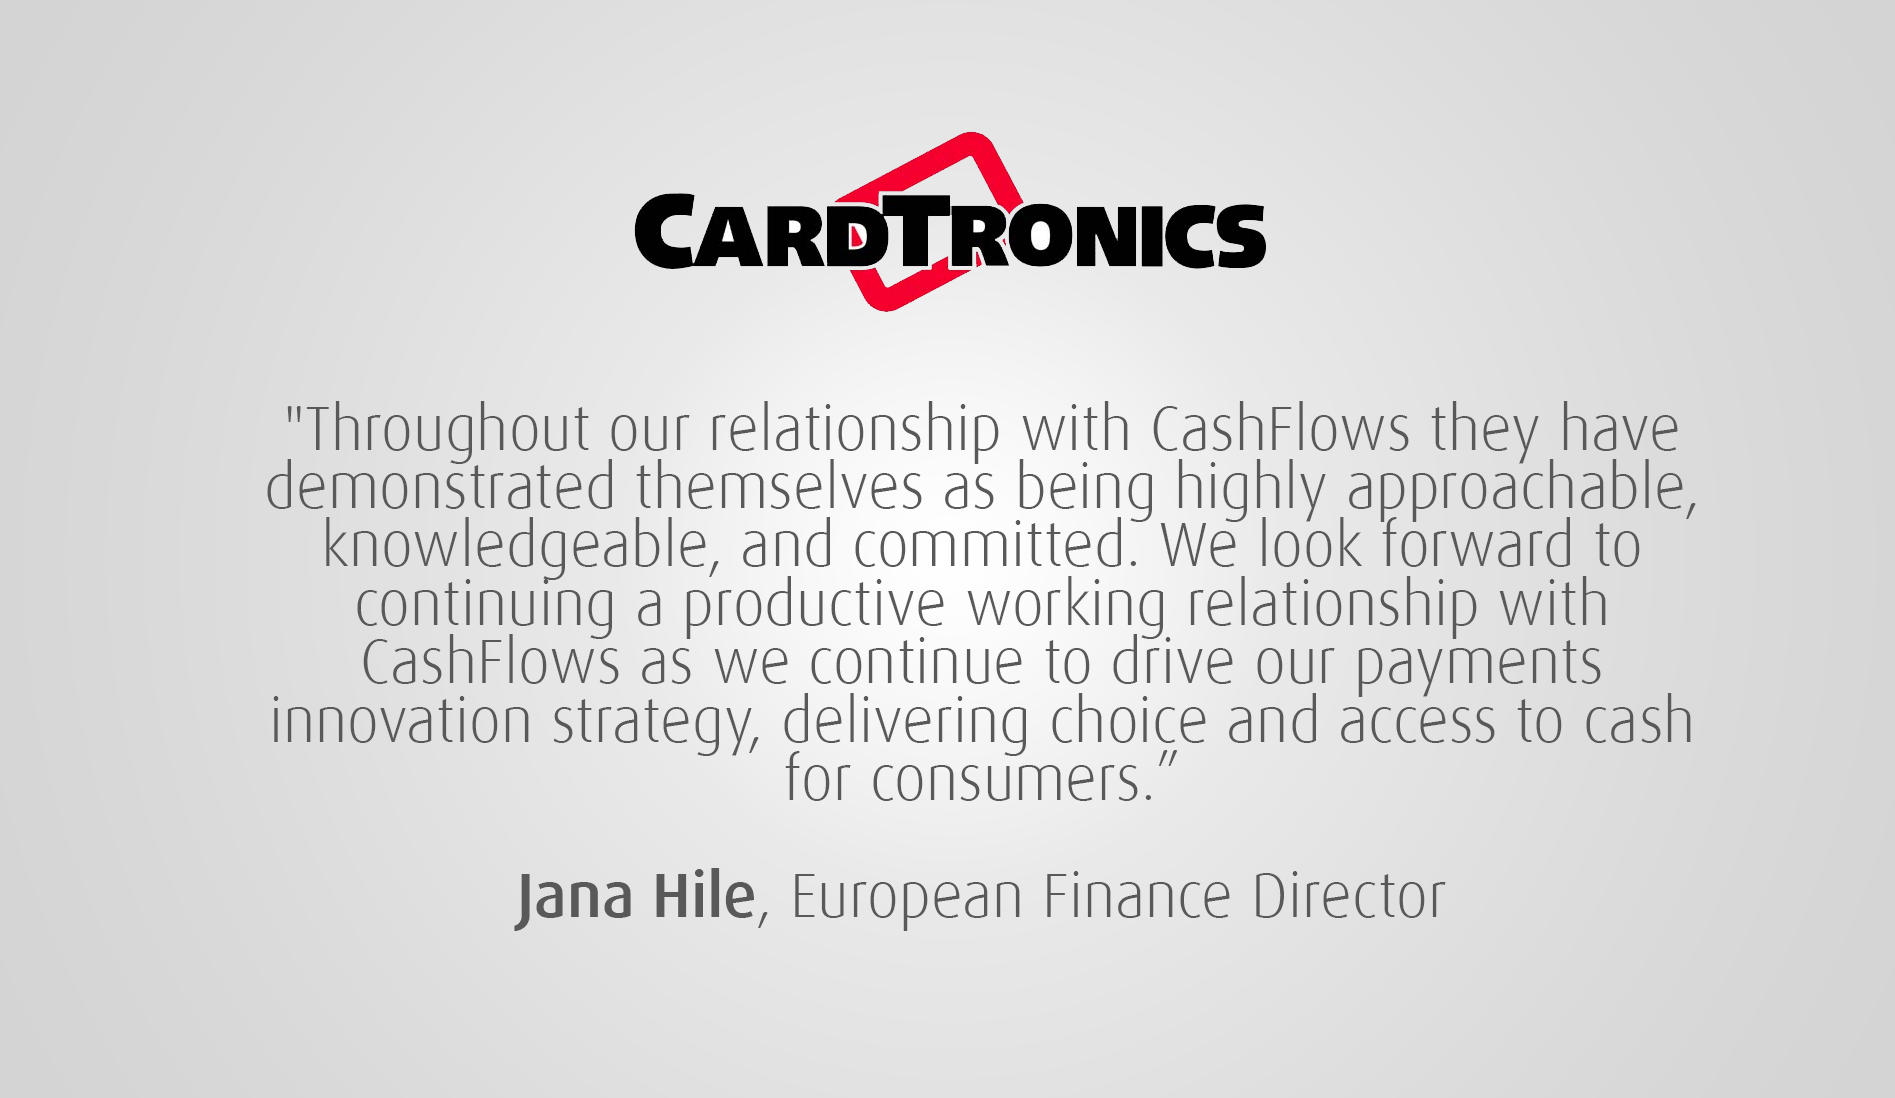 CashFlows and CardTronics